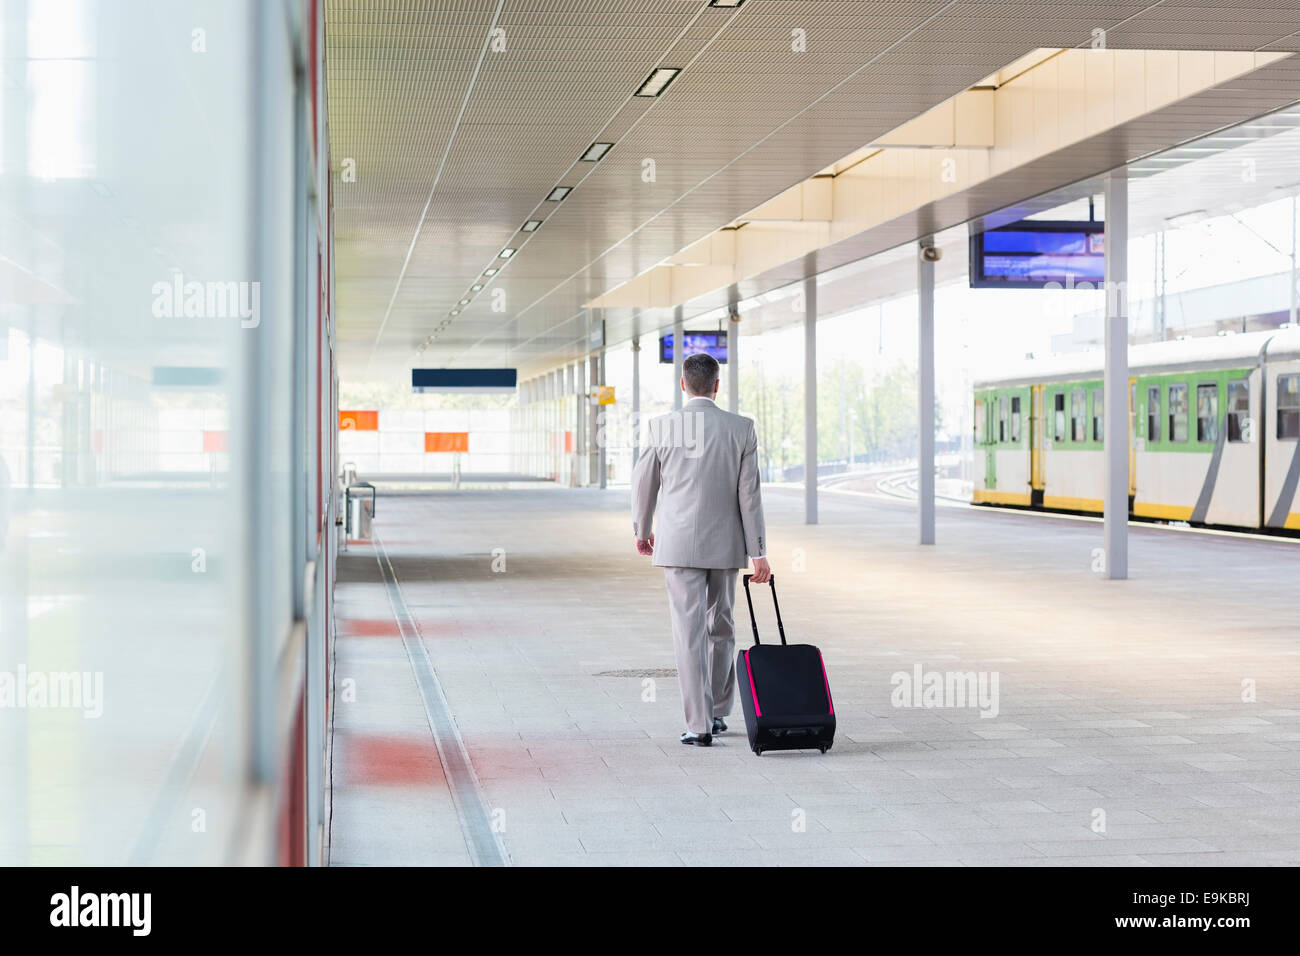 Full length rear view of businessman with luggage walking in railroad platform - Stock Image